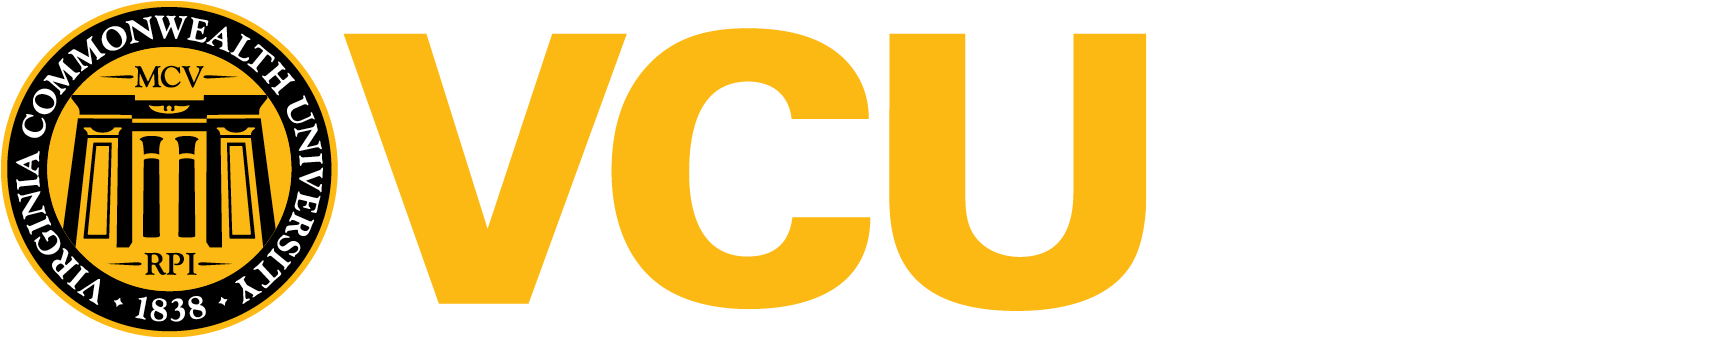 VCU Libraries logo